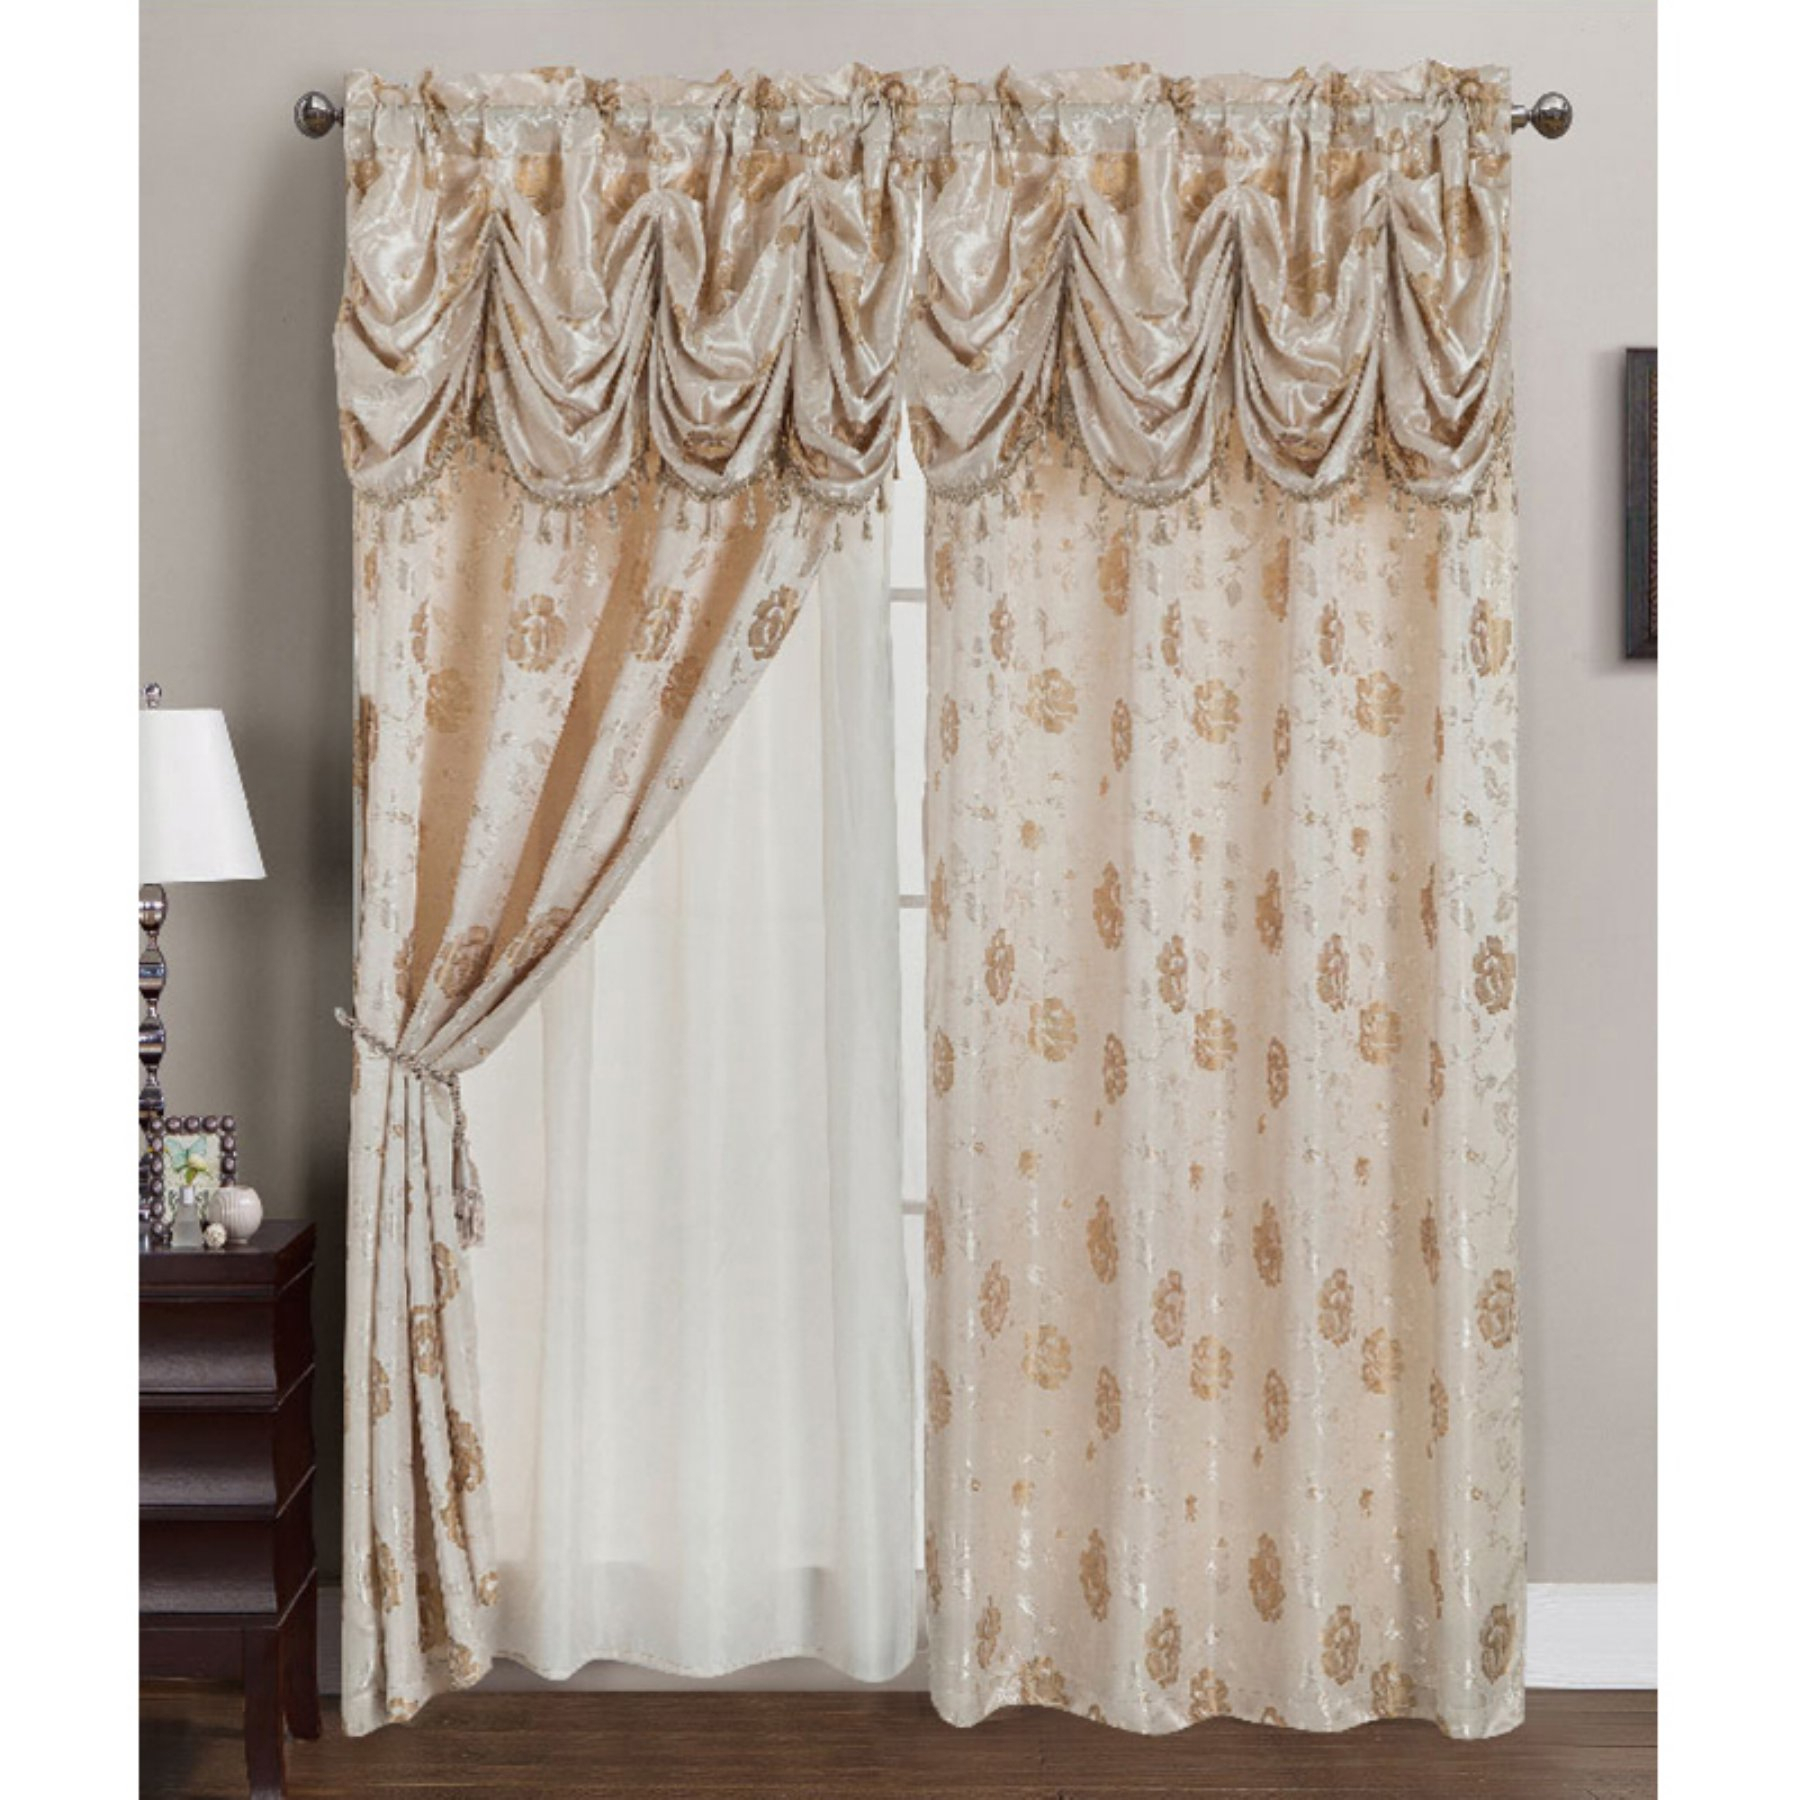 Rt Designers Collection Kelly Jacquard Double Rod Pocket Pertaining To Elegant Comfort Luxury Penelopie Jacquard Window Curtain Panel Pairs (View 9 of 20)